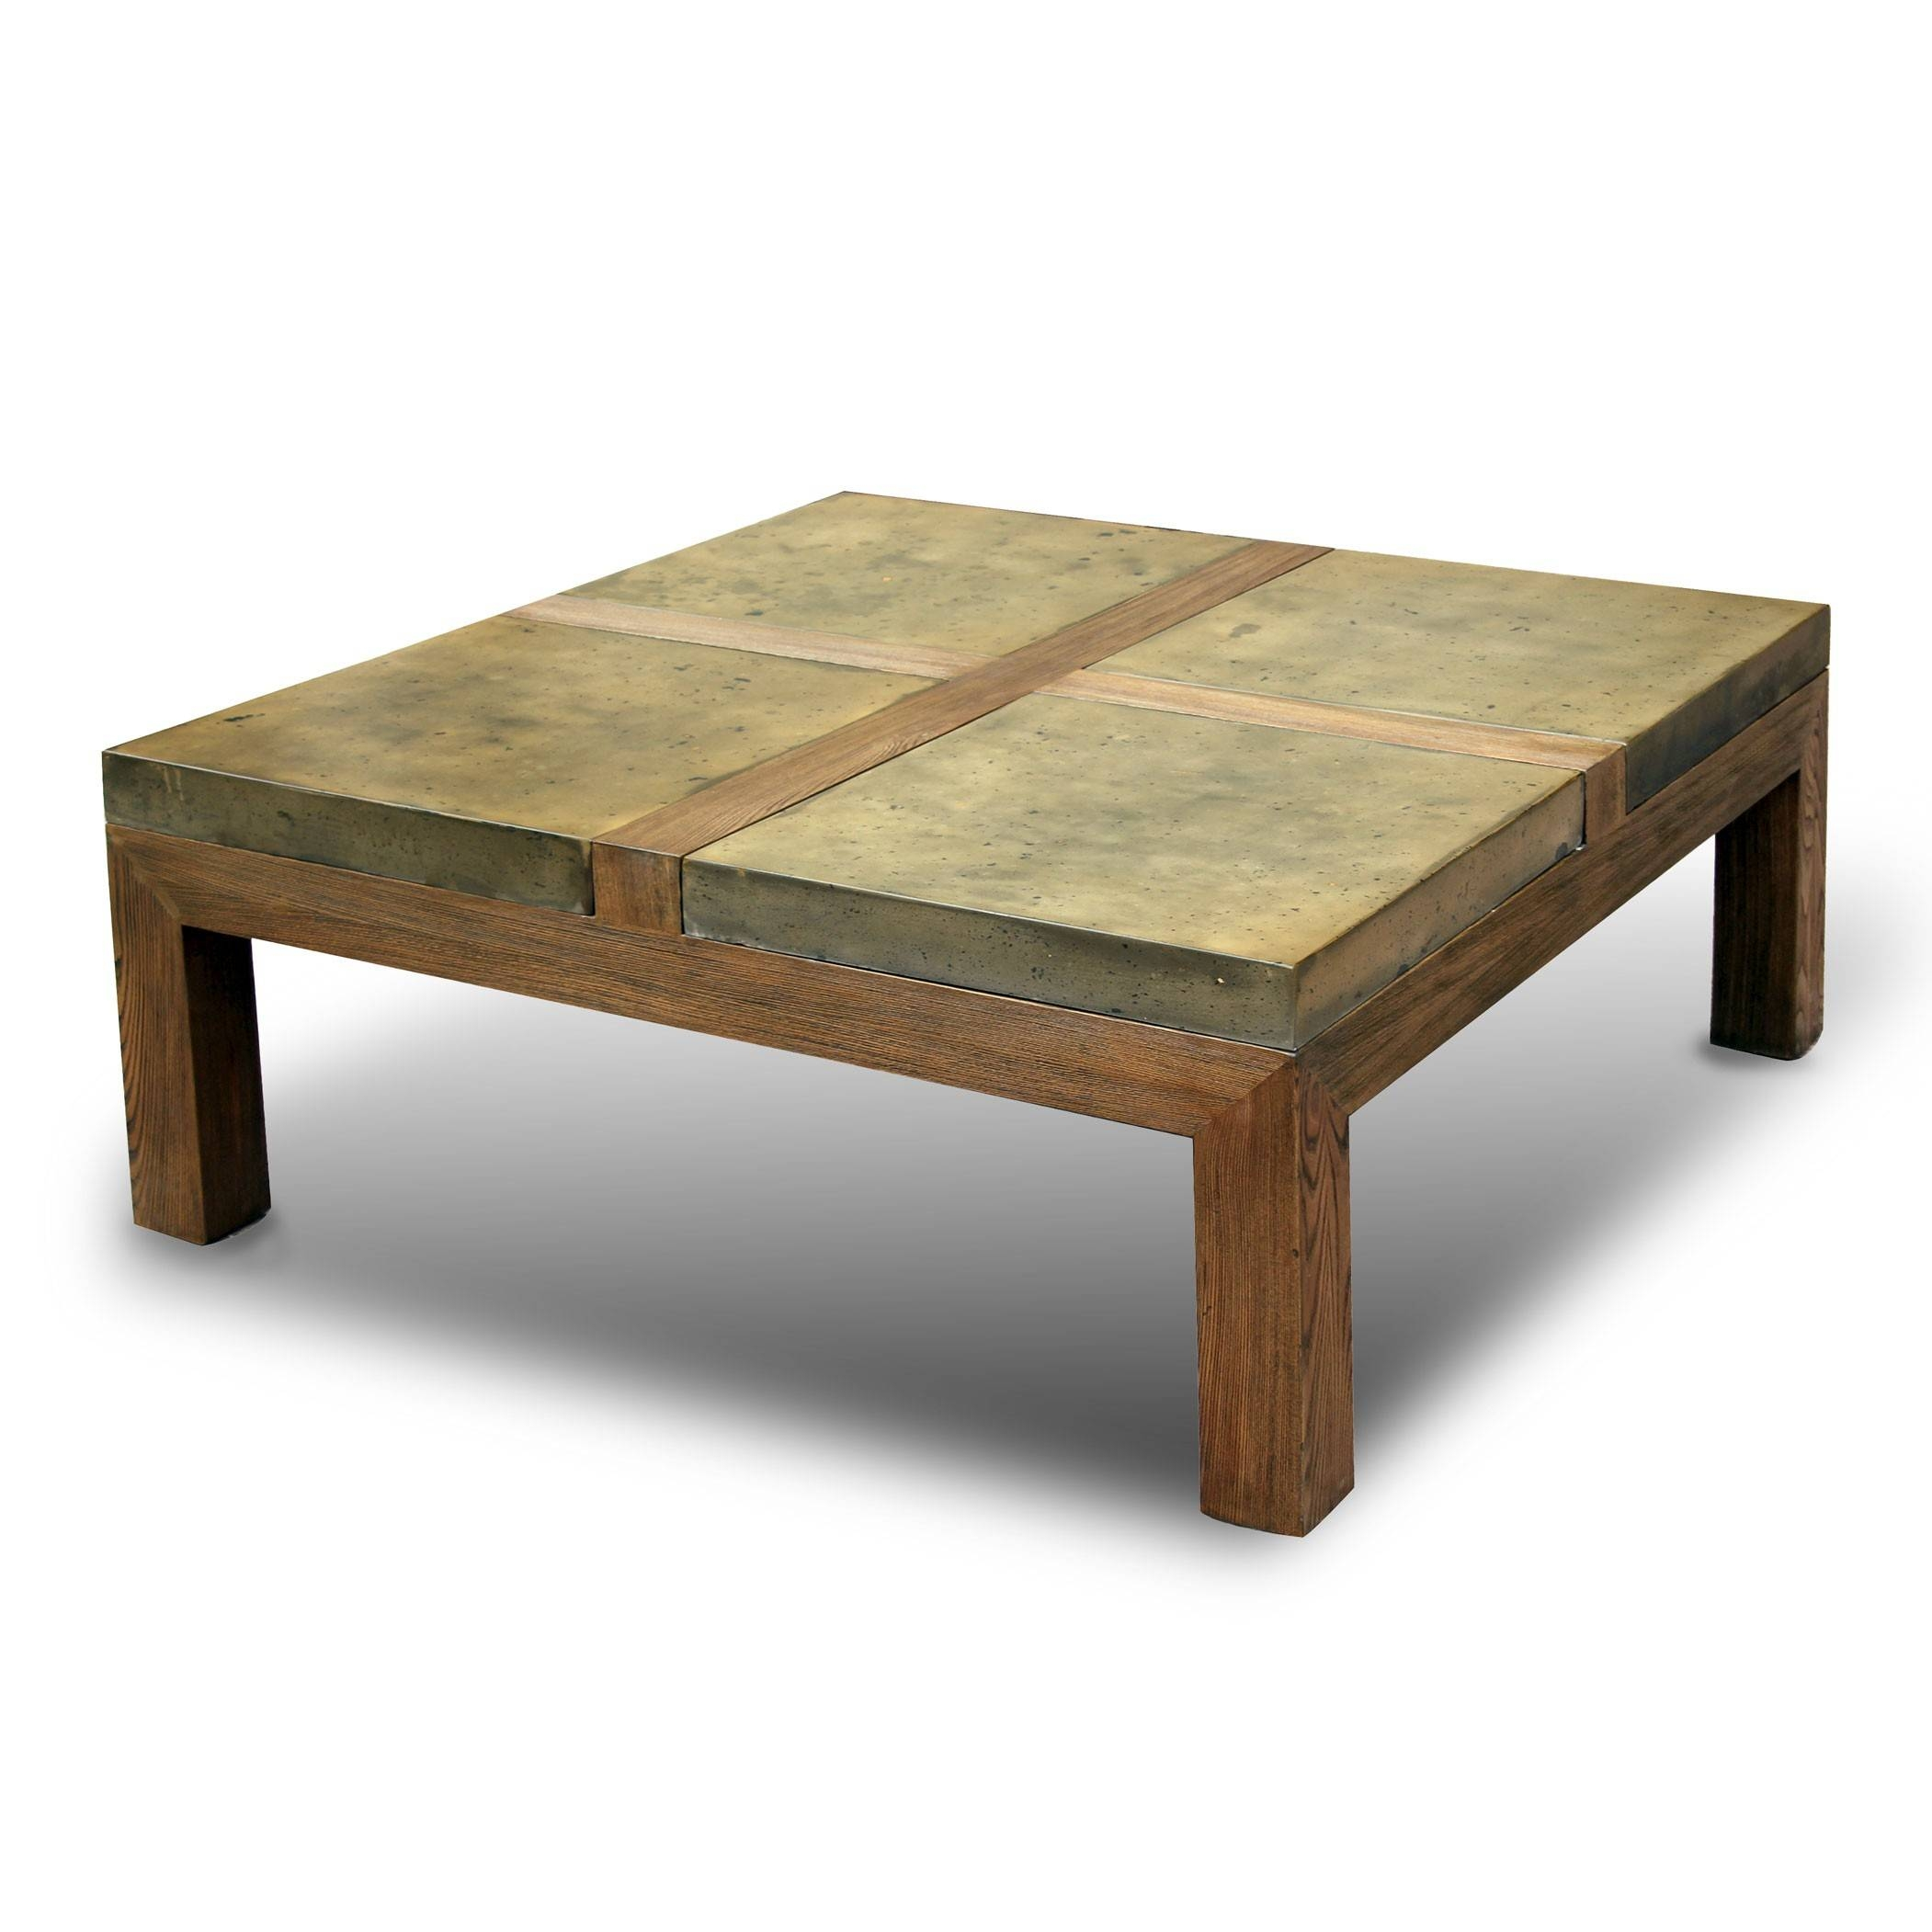 Coffee Table: Wonderful Stone Coffee Tables Design Natural Stone regarding Square Stone Coffee Tables (Image 11 of 30)